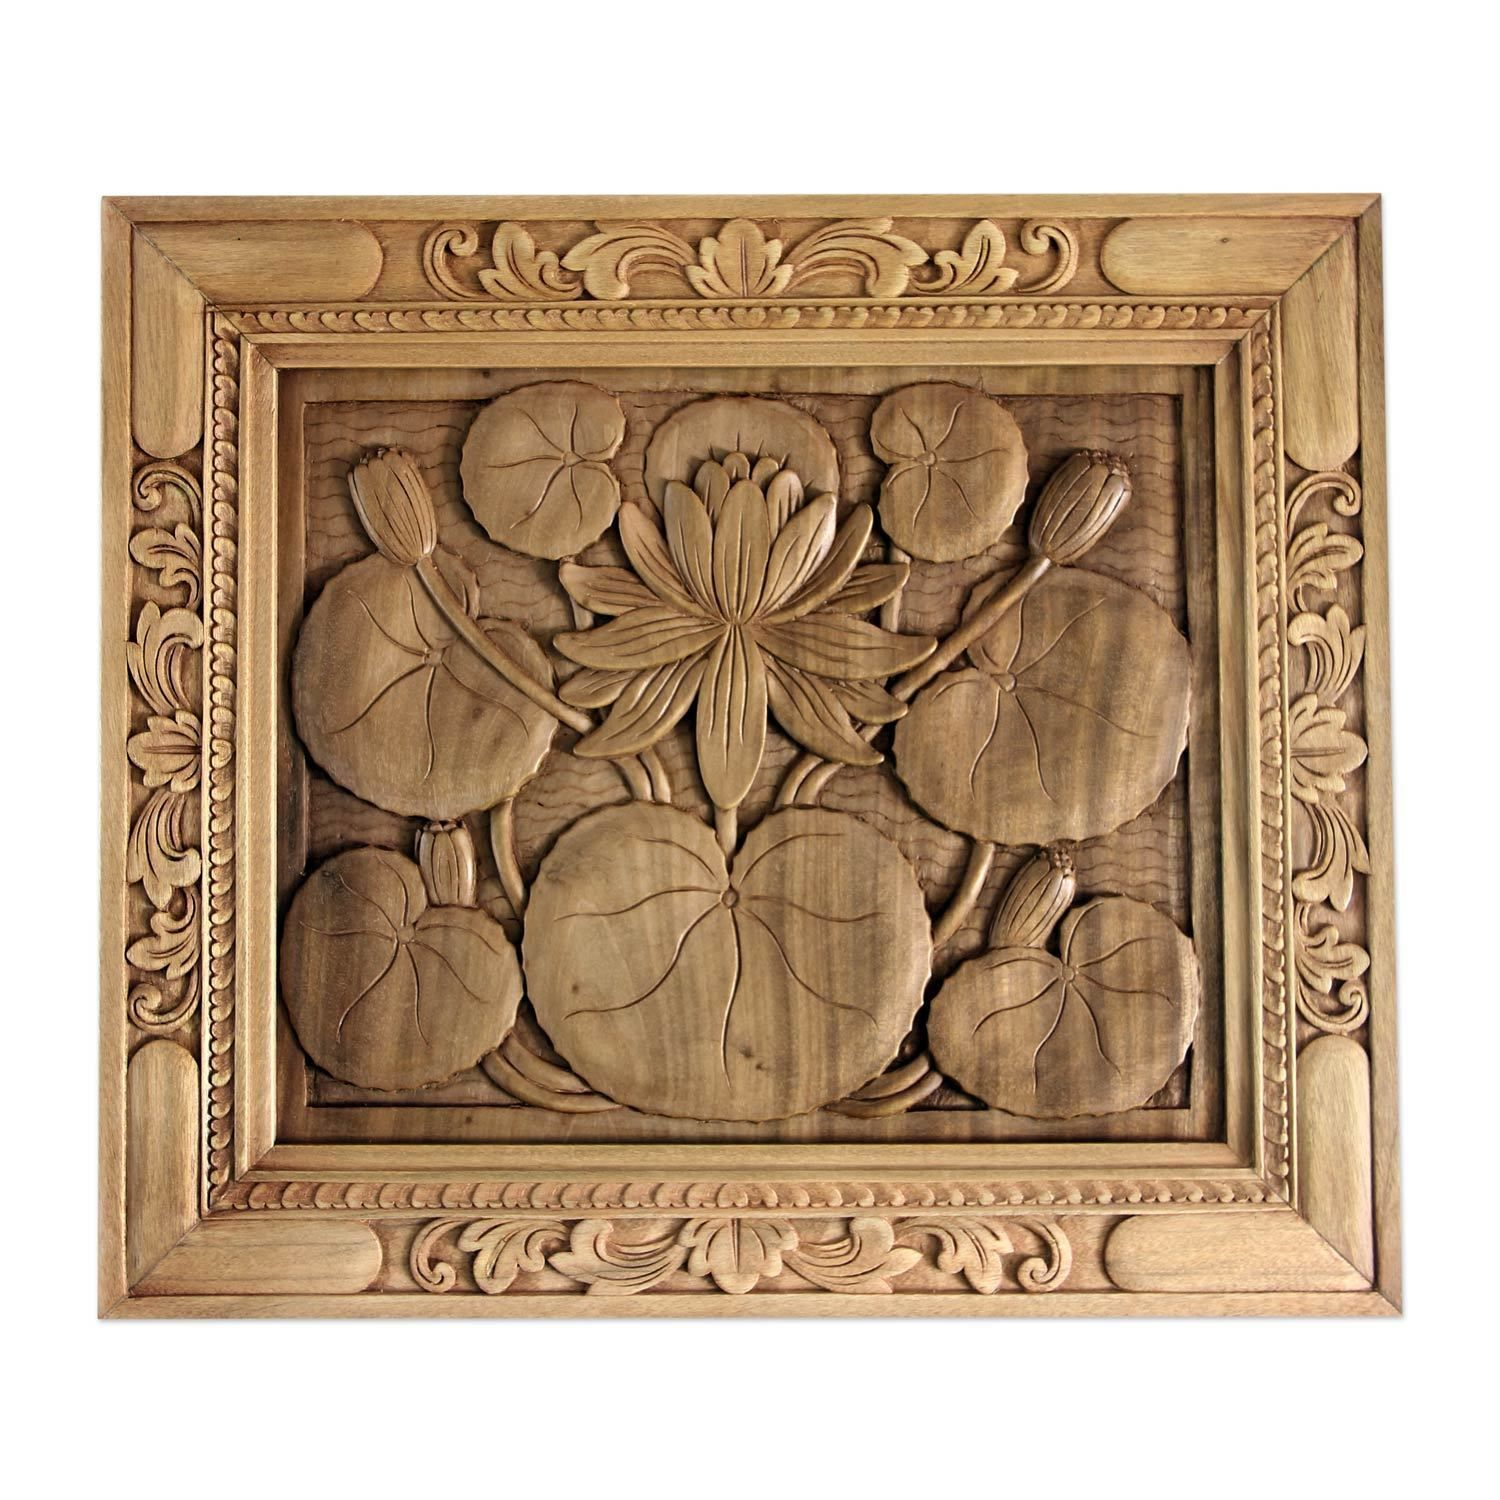 Novica wood relief panel ulotus blossomu products pinterest